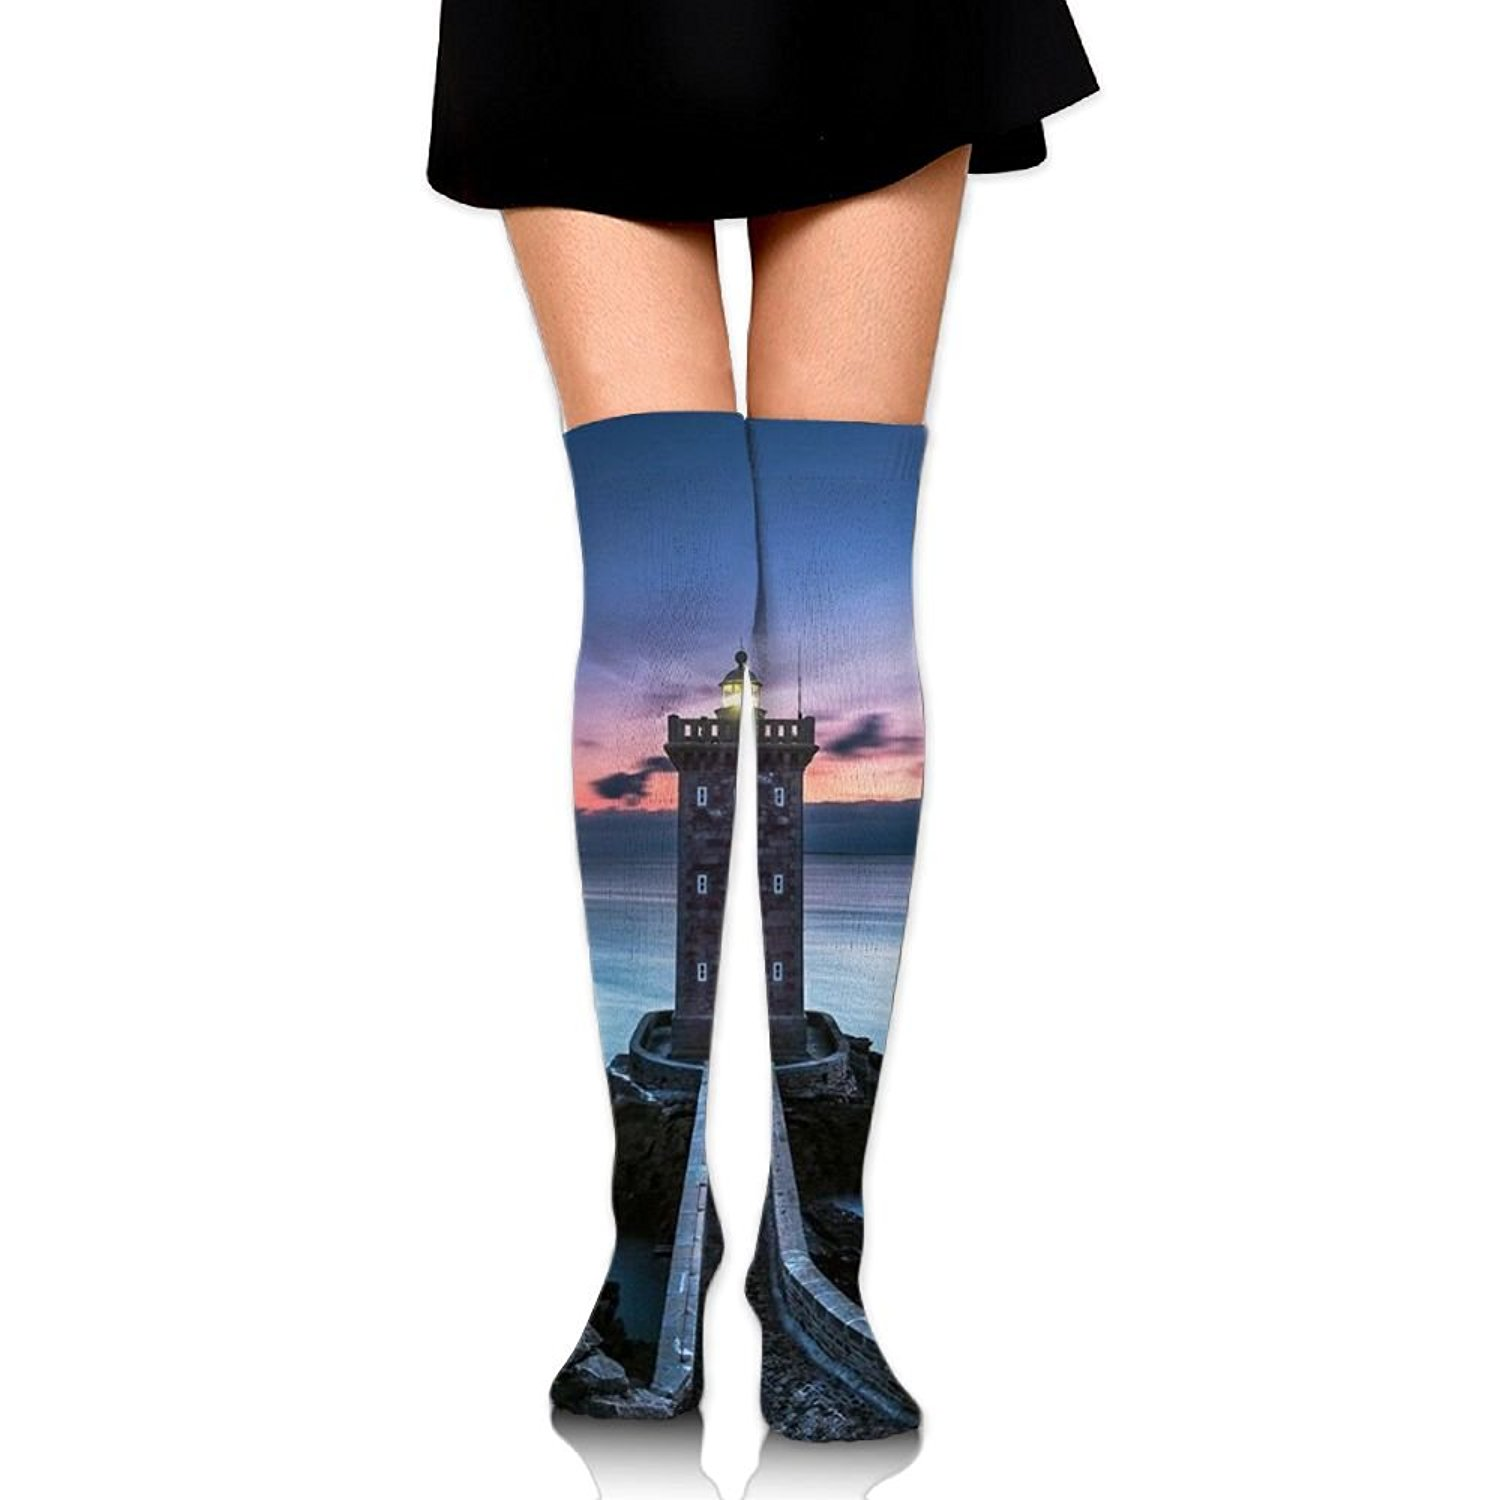 Zaqxsw Lighthouse Women Graphic Thigh High Socks Thermal Socks For Womens